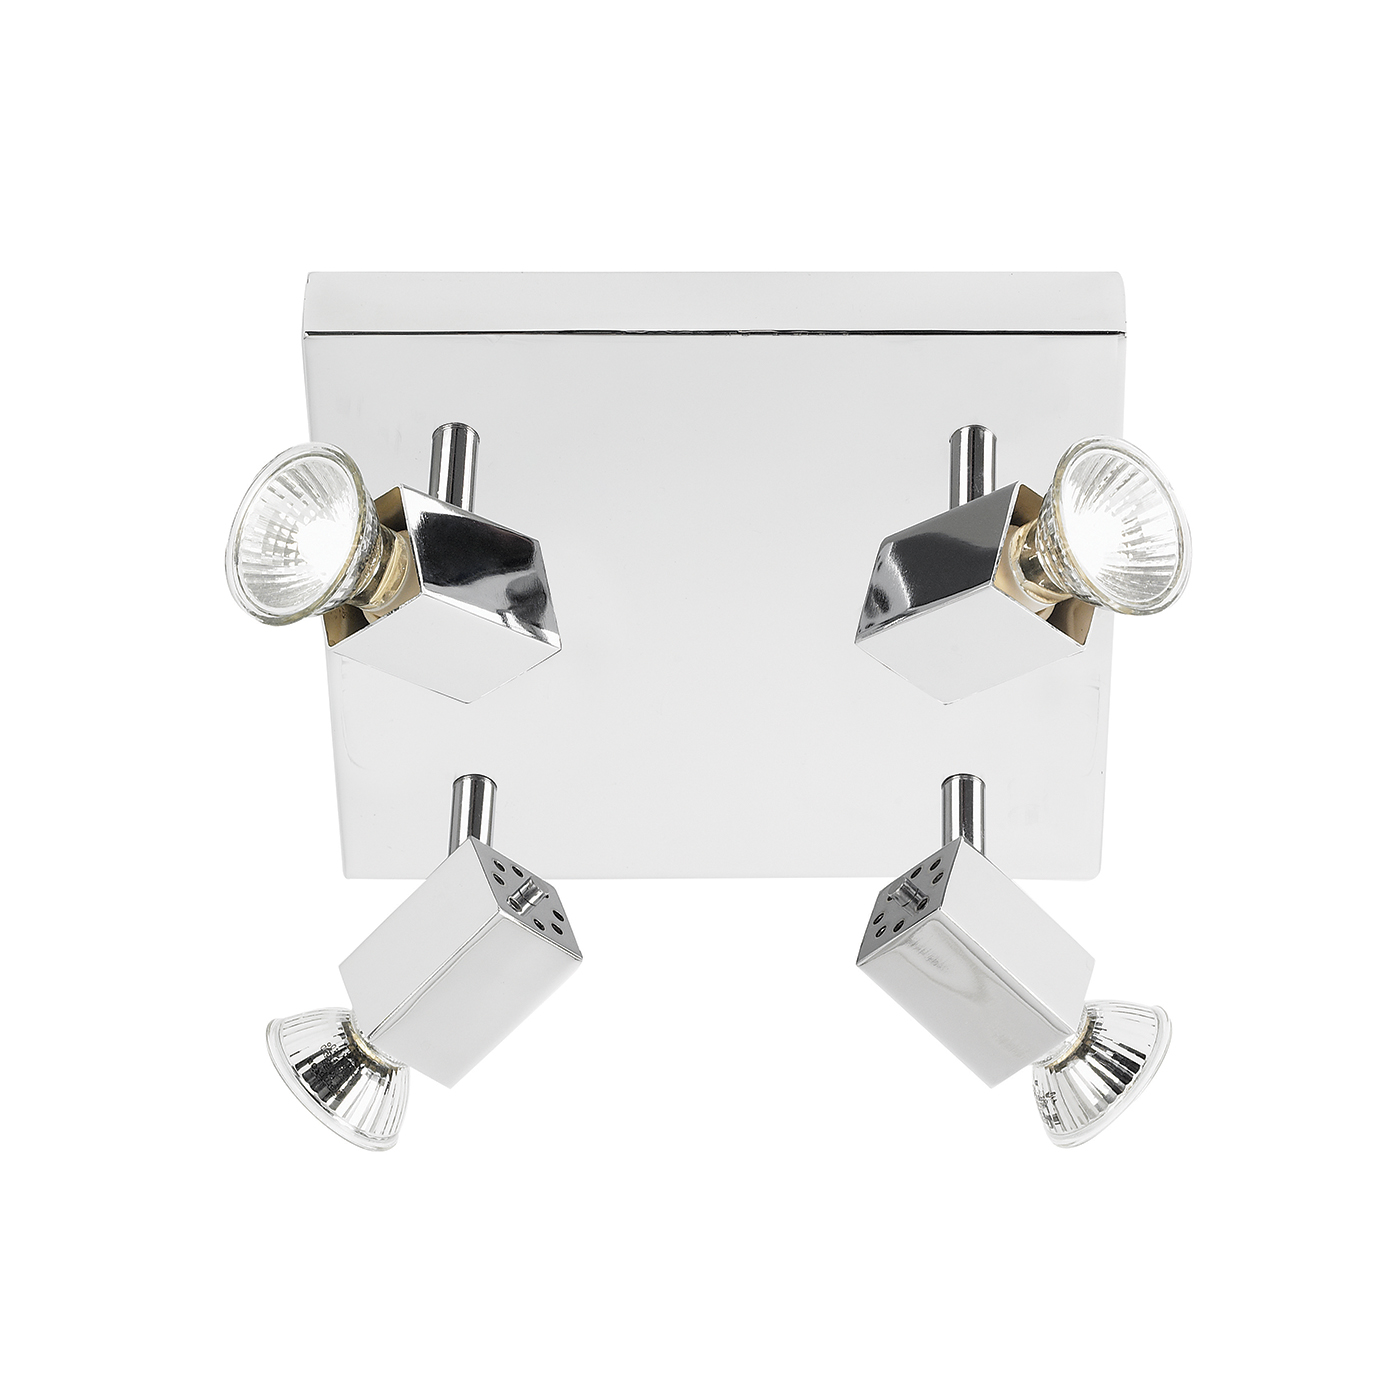 Endon Grove ceiling spotlight square 4x 50W Chrome effect plate